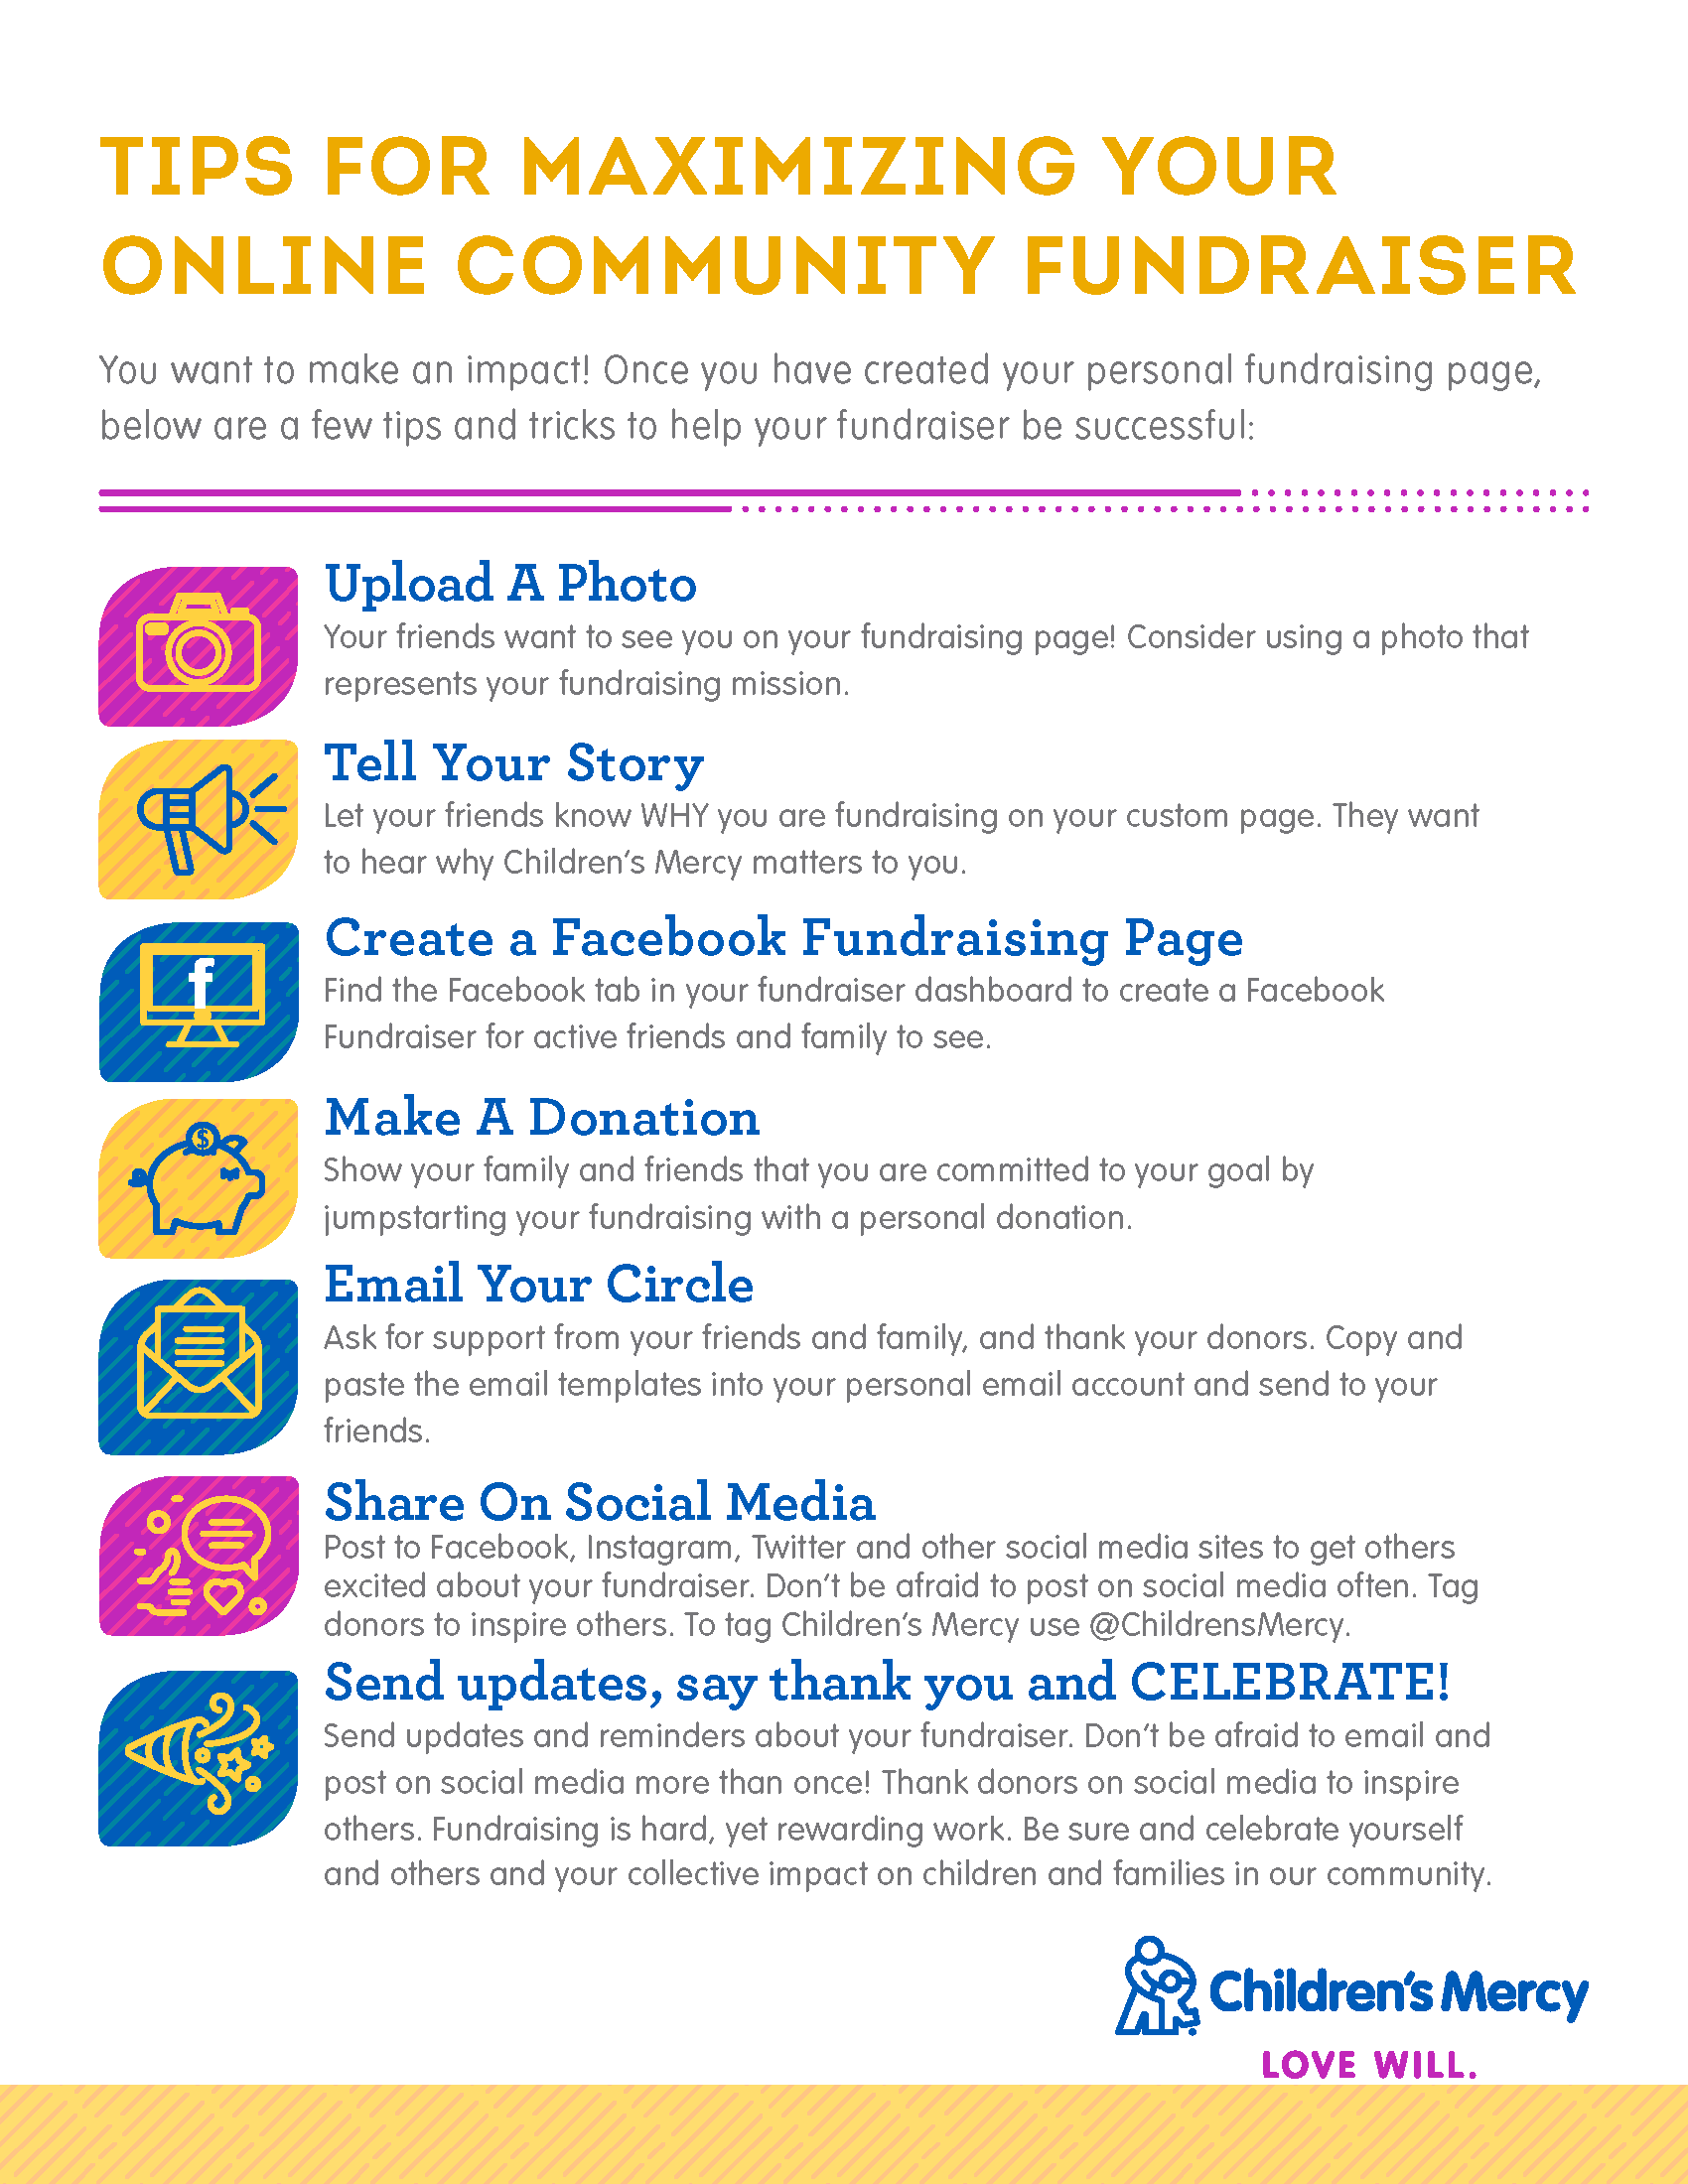 Tips for Maximizing Your Online Community Fundraiser graphic